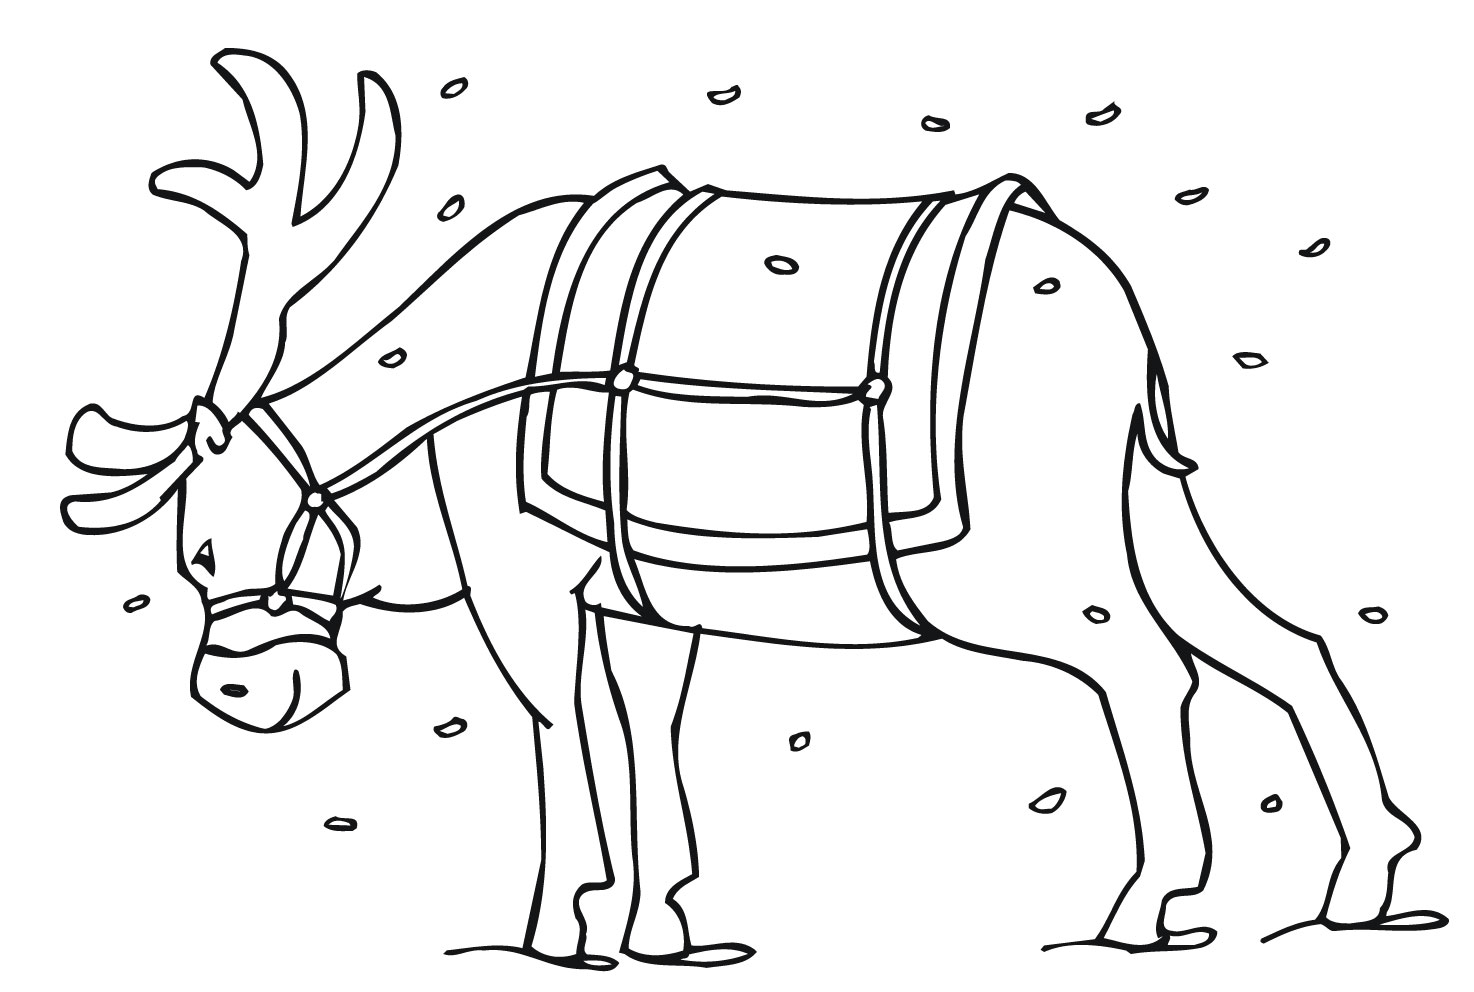 Drawn reindeer colouring page Pages Page Free With Reindeer